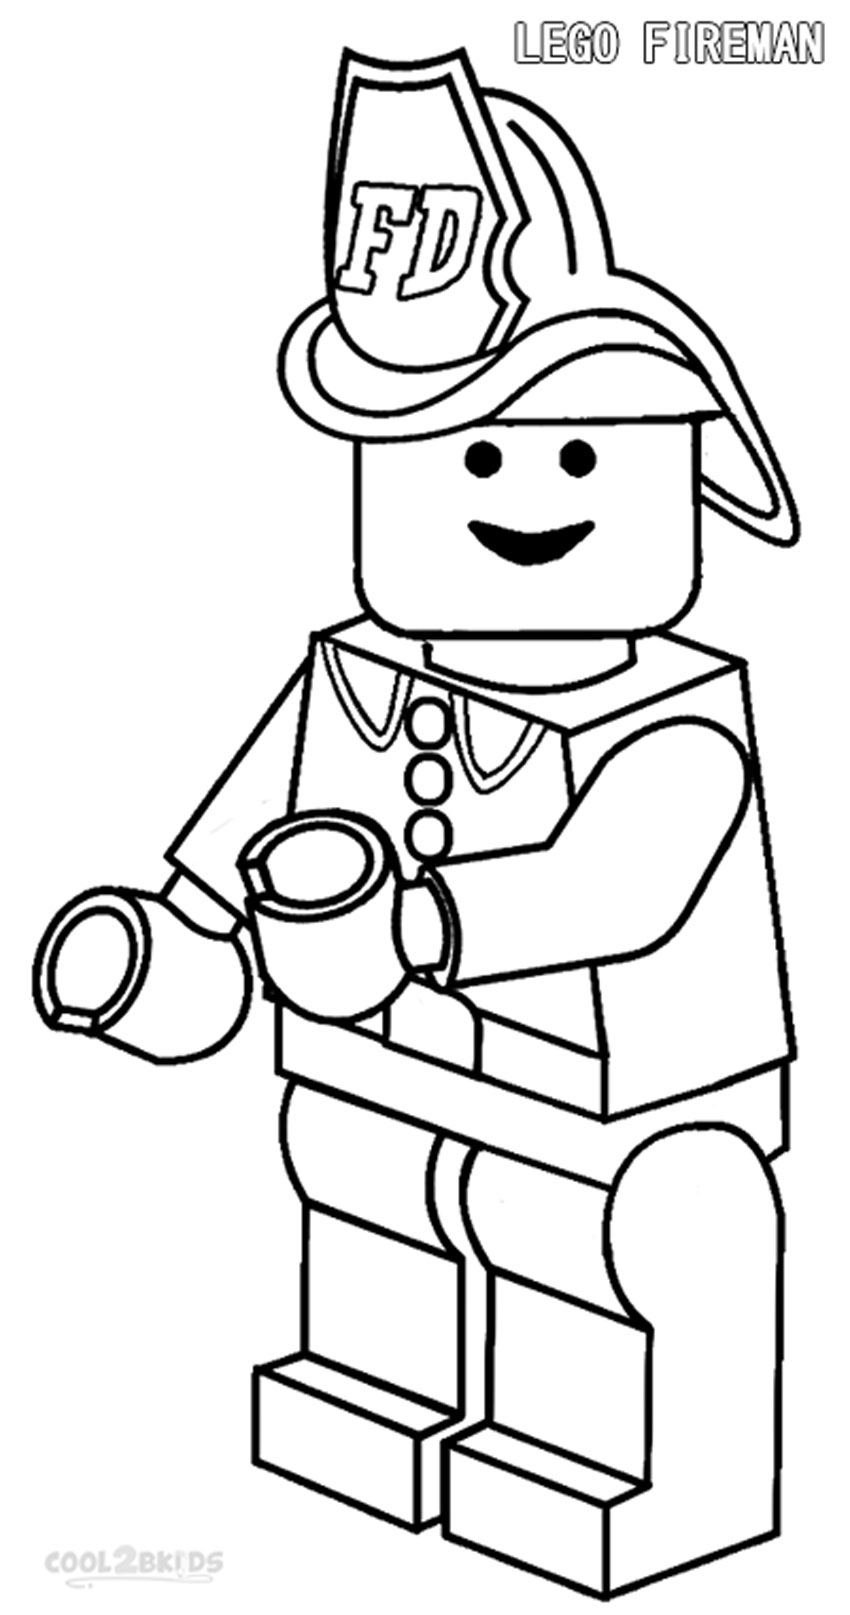 printable coloring pages fireman - photo#15